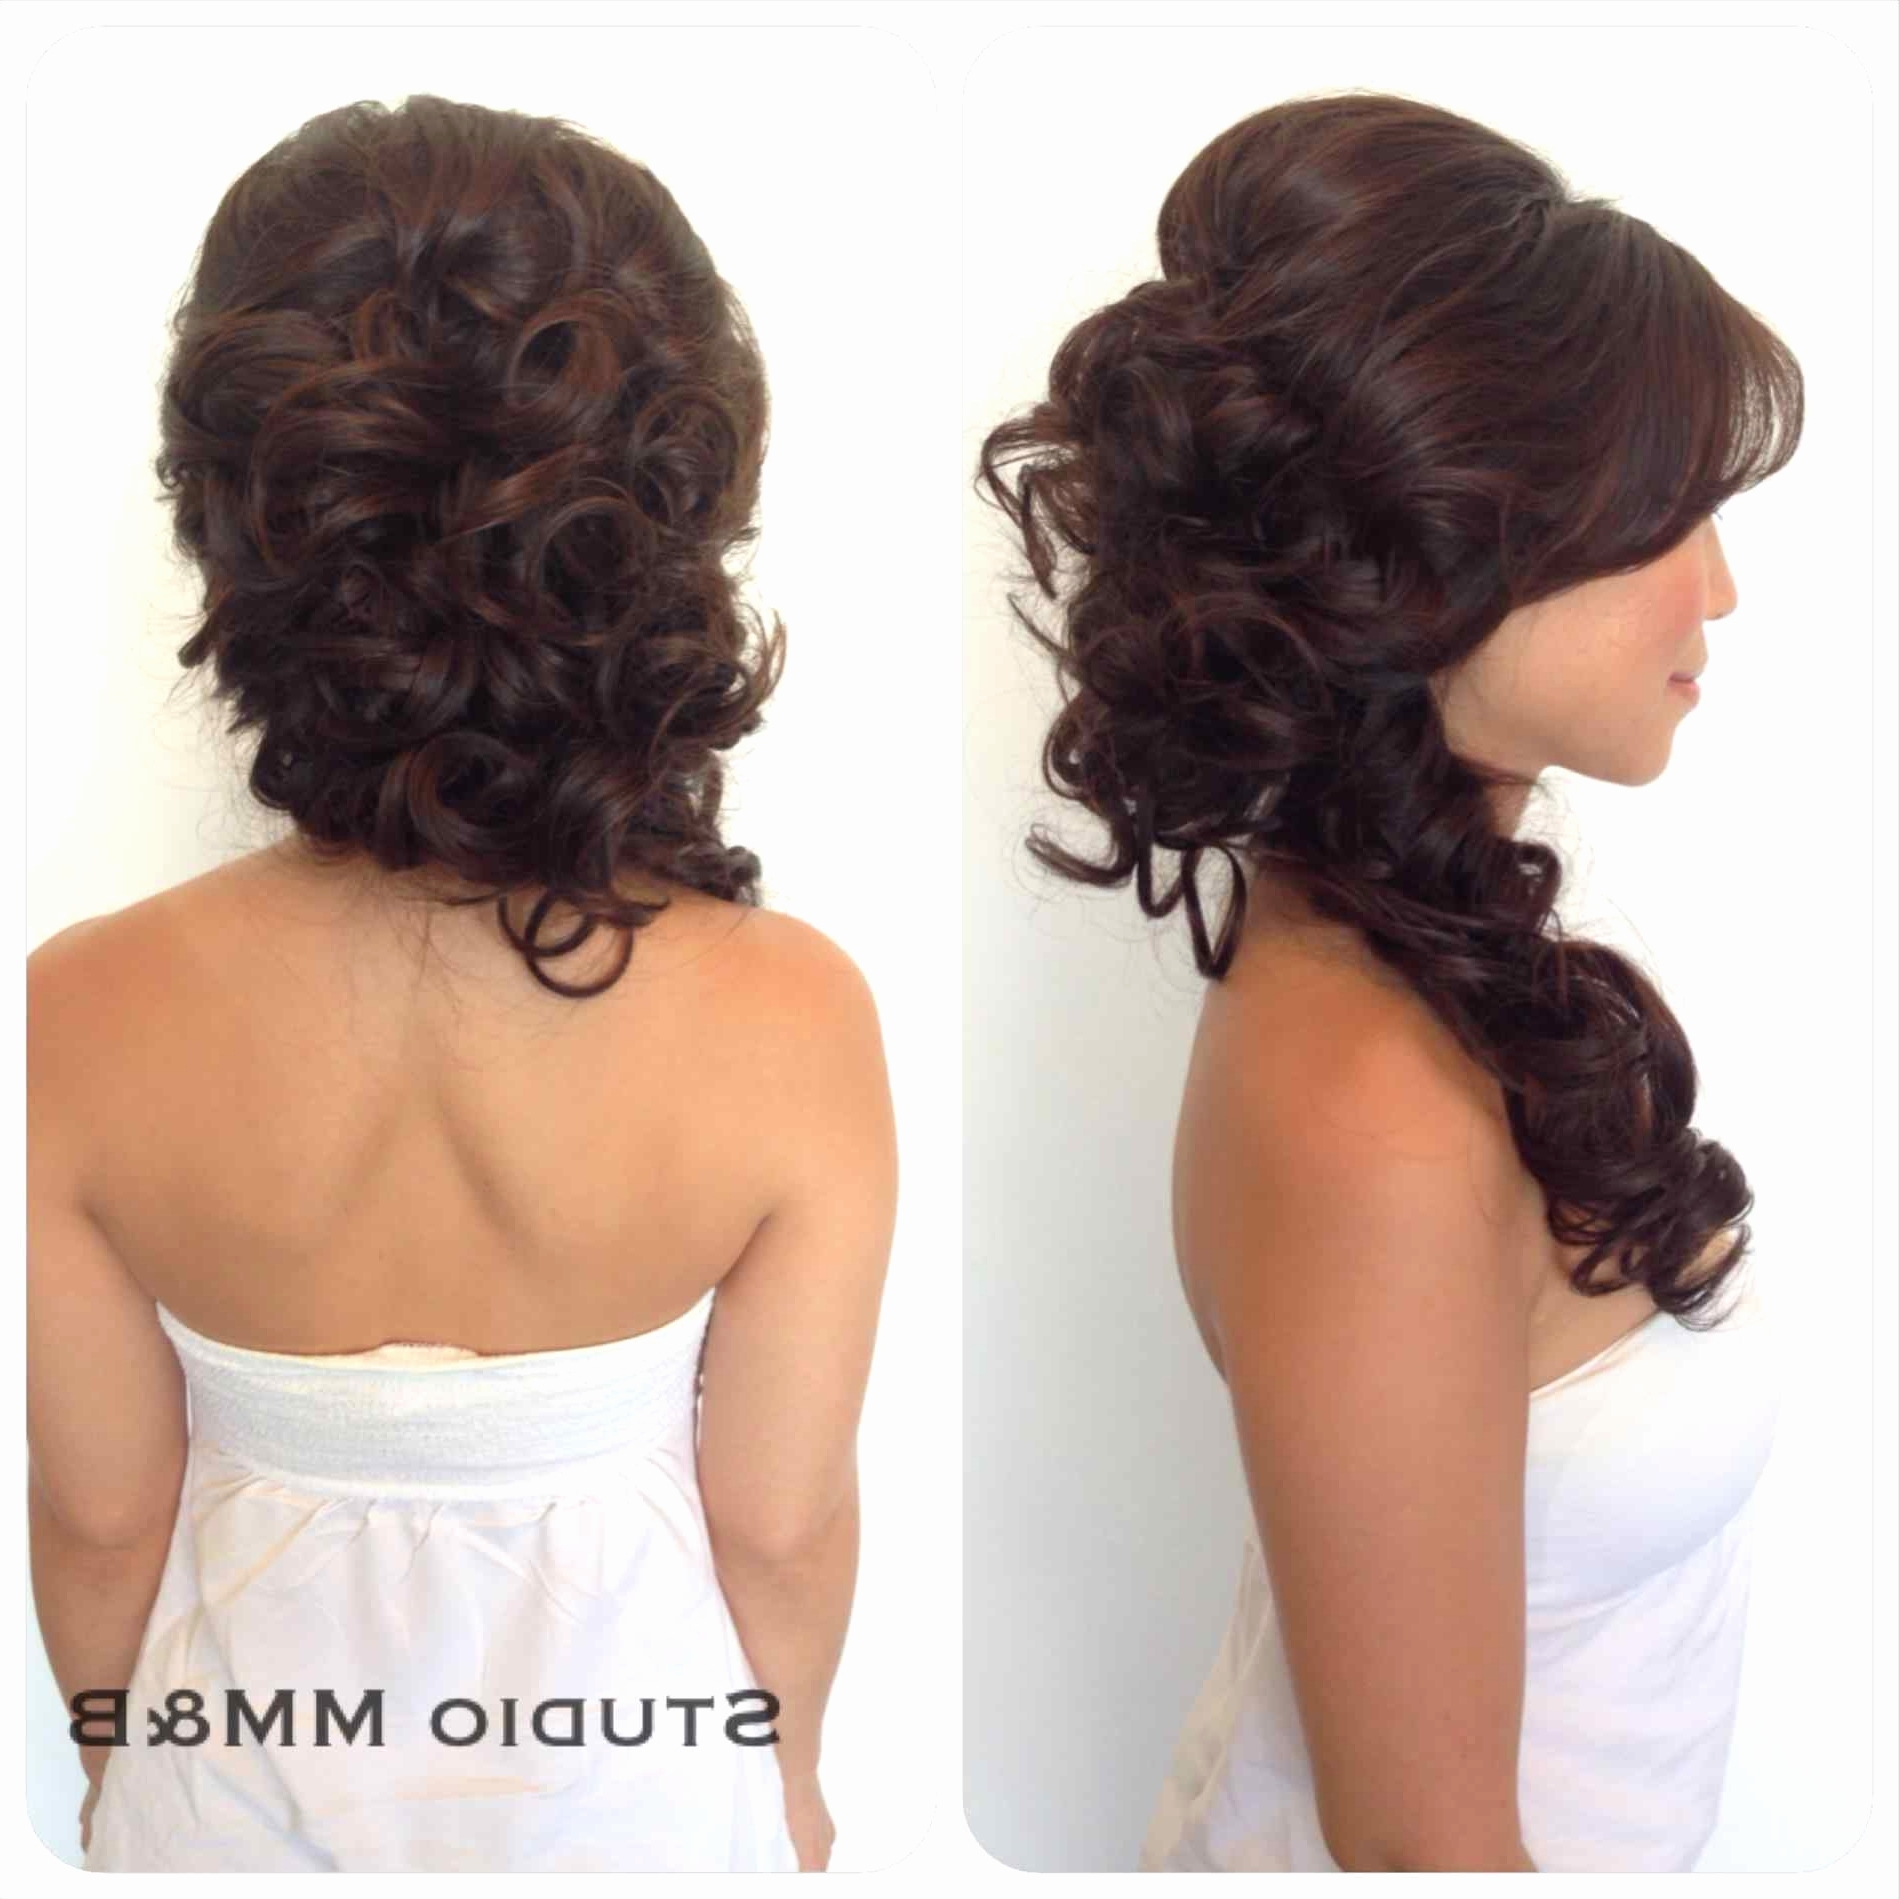 Pin Curl Wedding Hairstyles Magnificent Wedding Hairstyles Up And To In Widely Used Pin Curls Wedding Hairstyles (View 13 of 15)